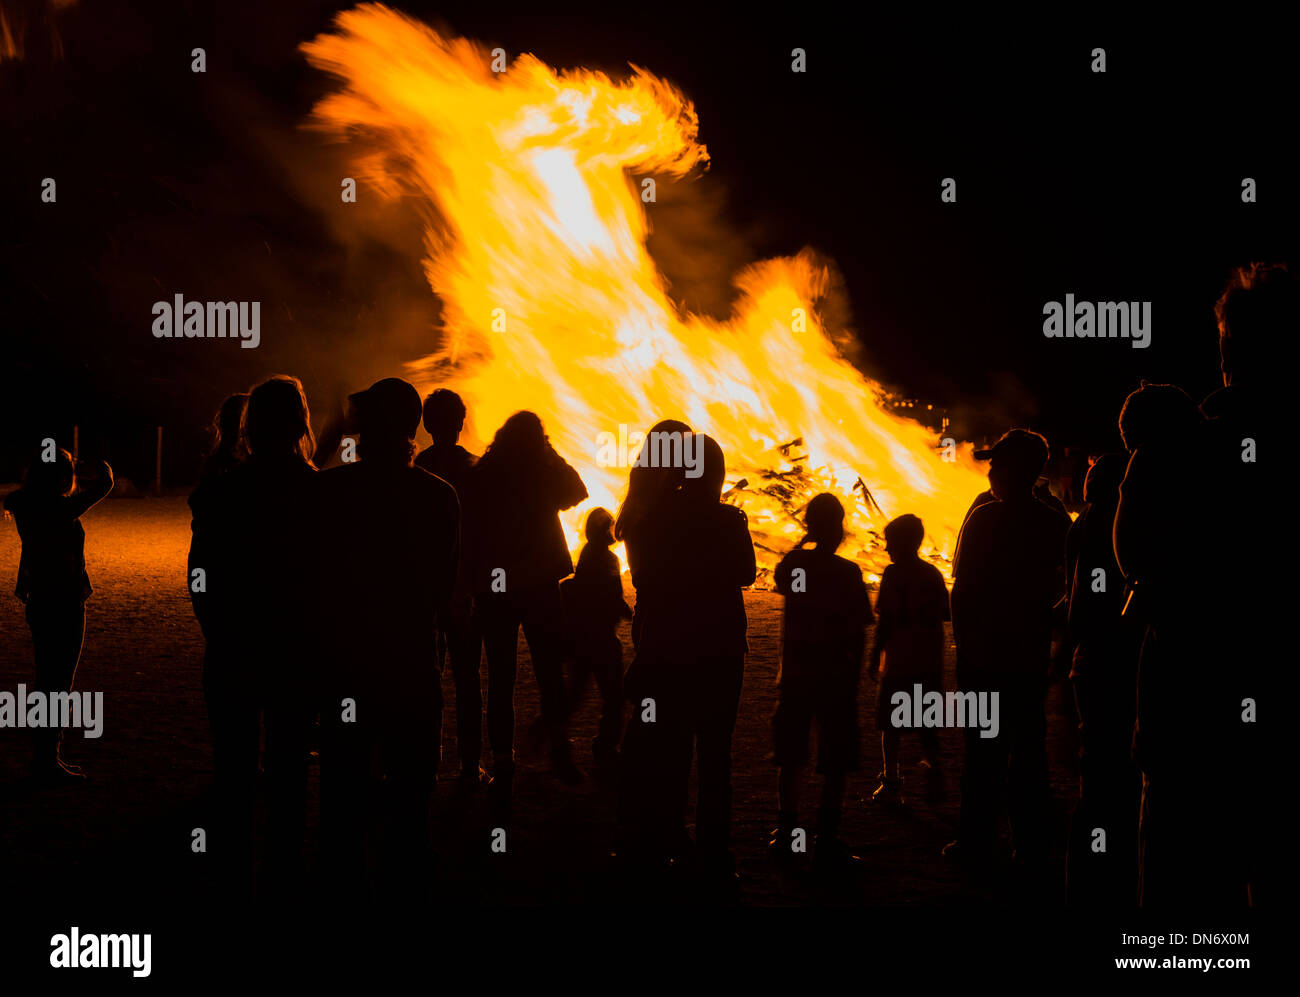 High school students gather for annual autumn pep rally and bonfire Stock Photo